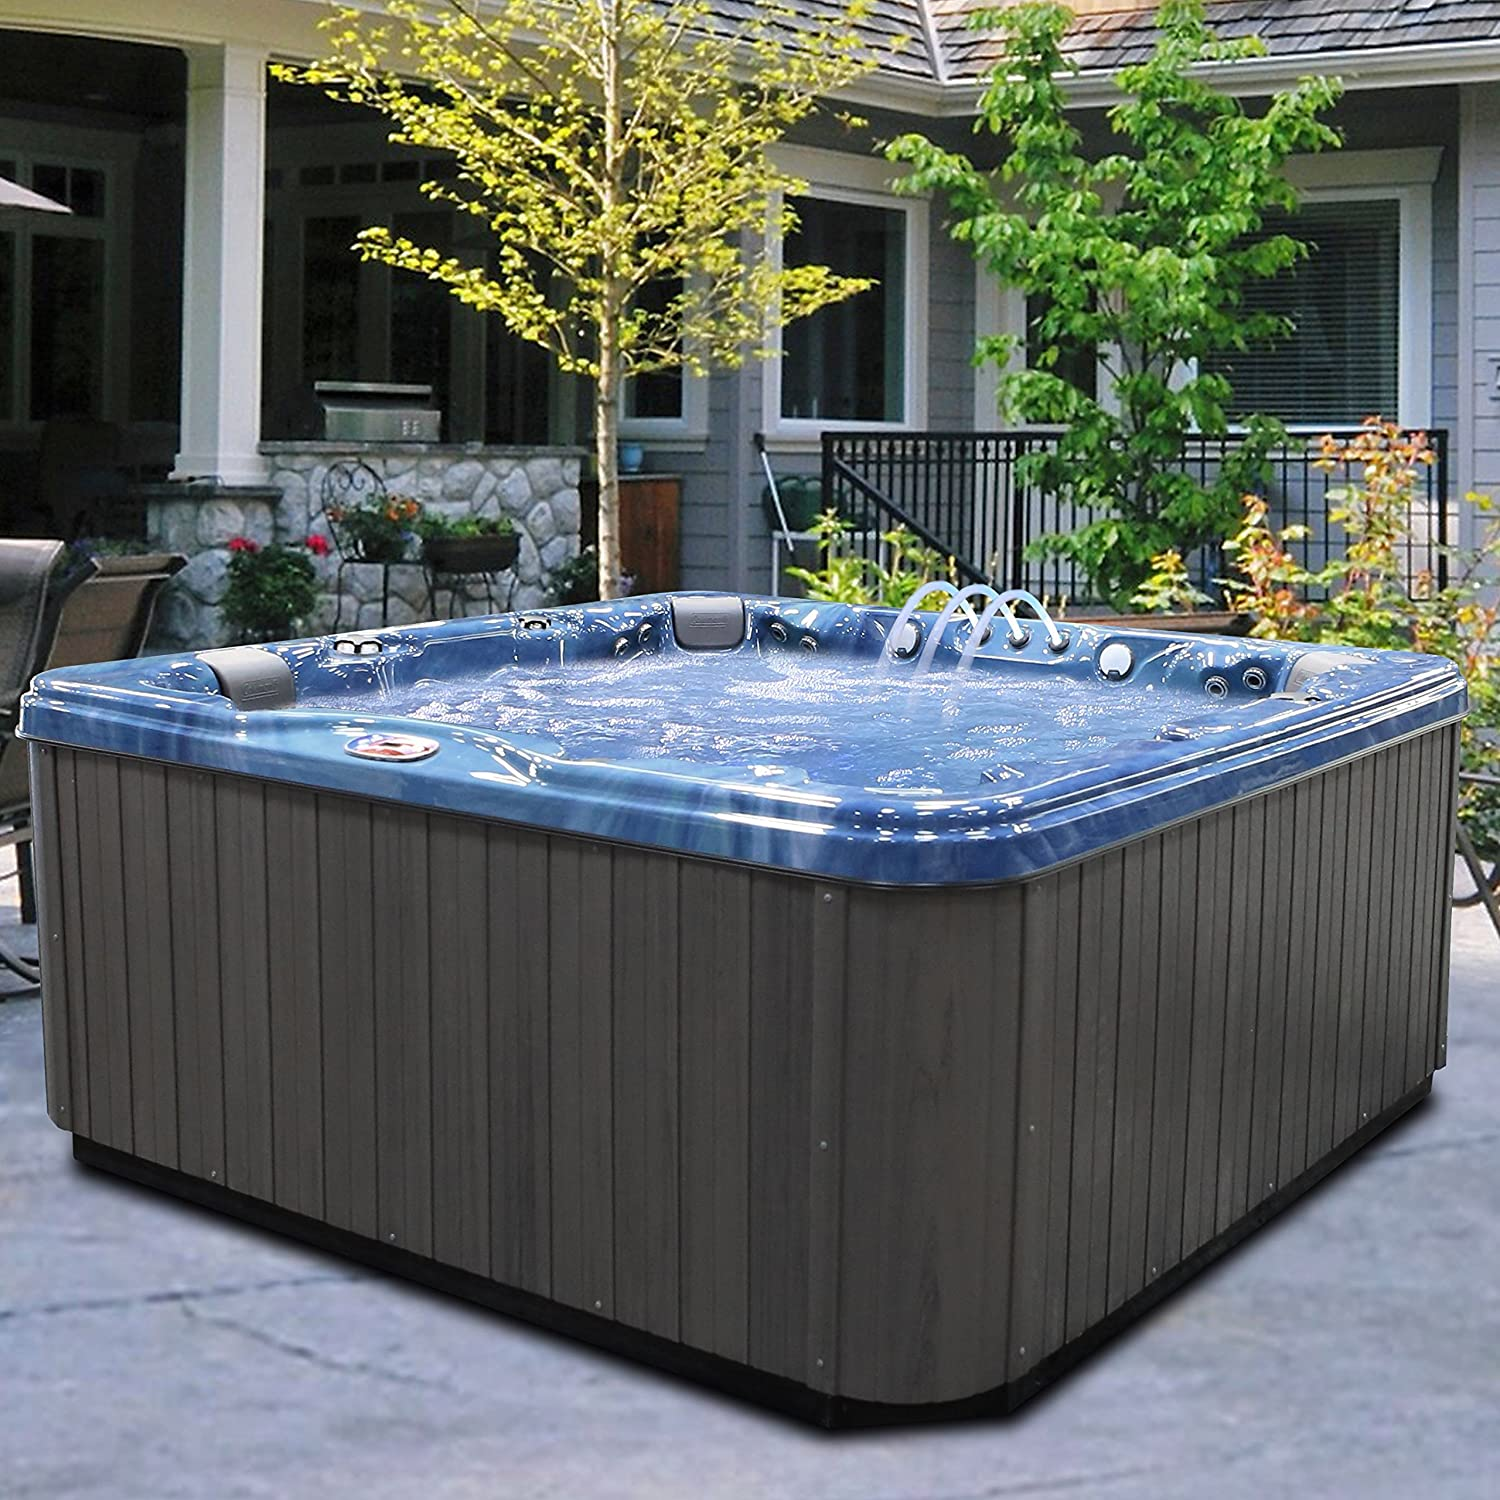 Amazon.com : American Spas AM-756LP 6-Person 56-Jet Lounger Spa with ...